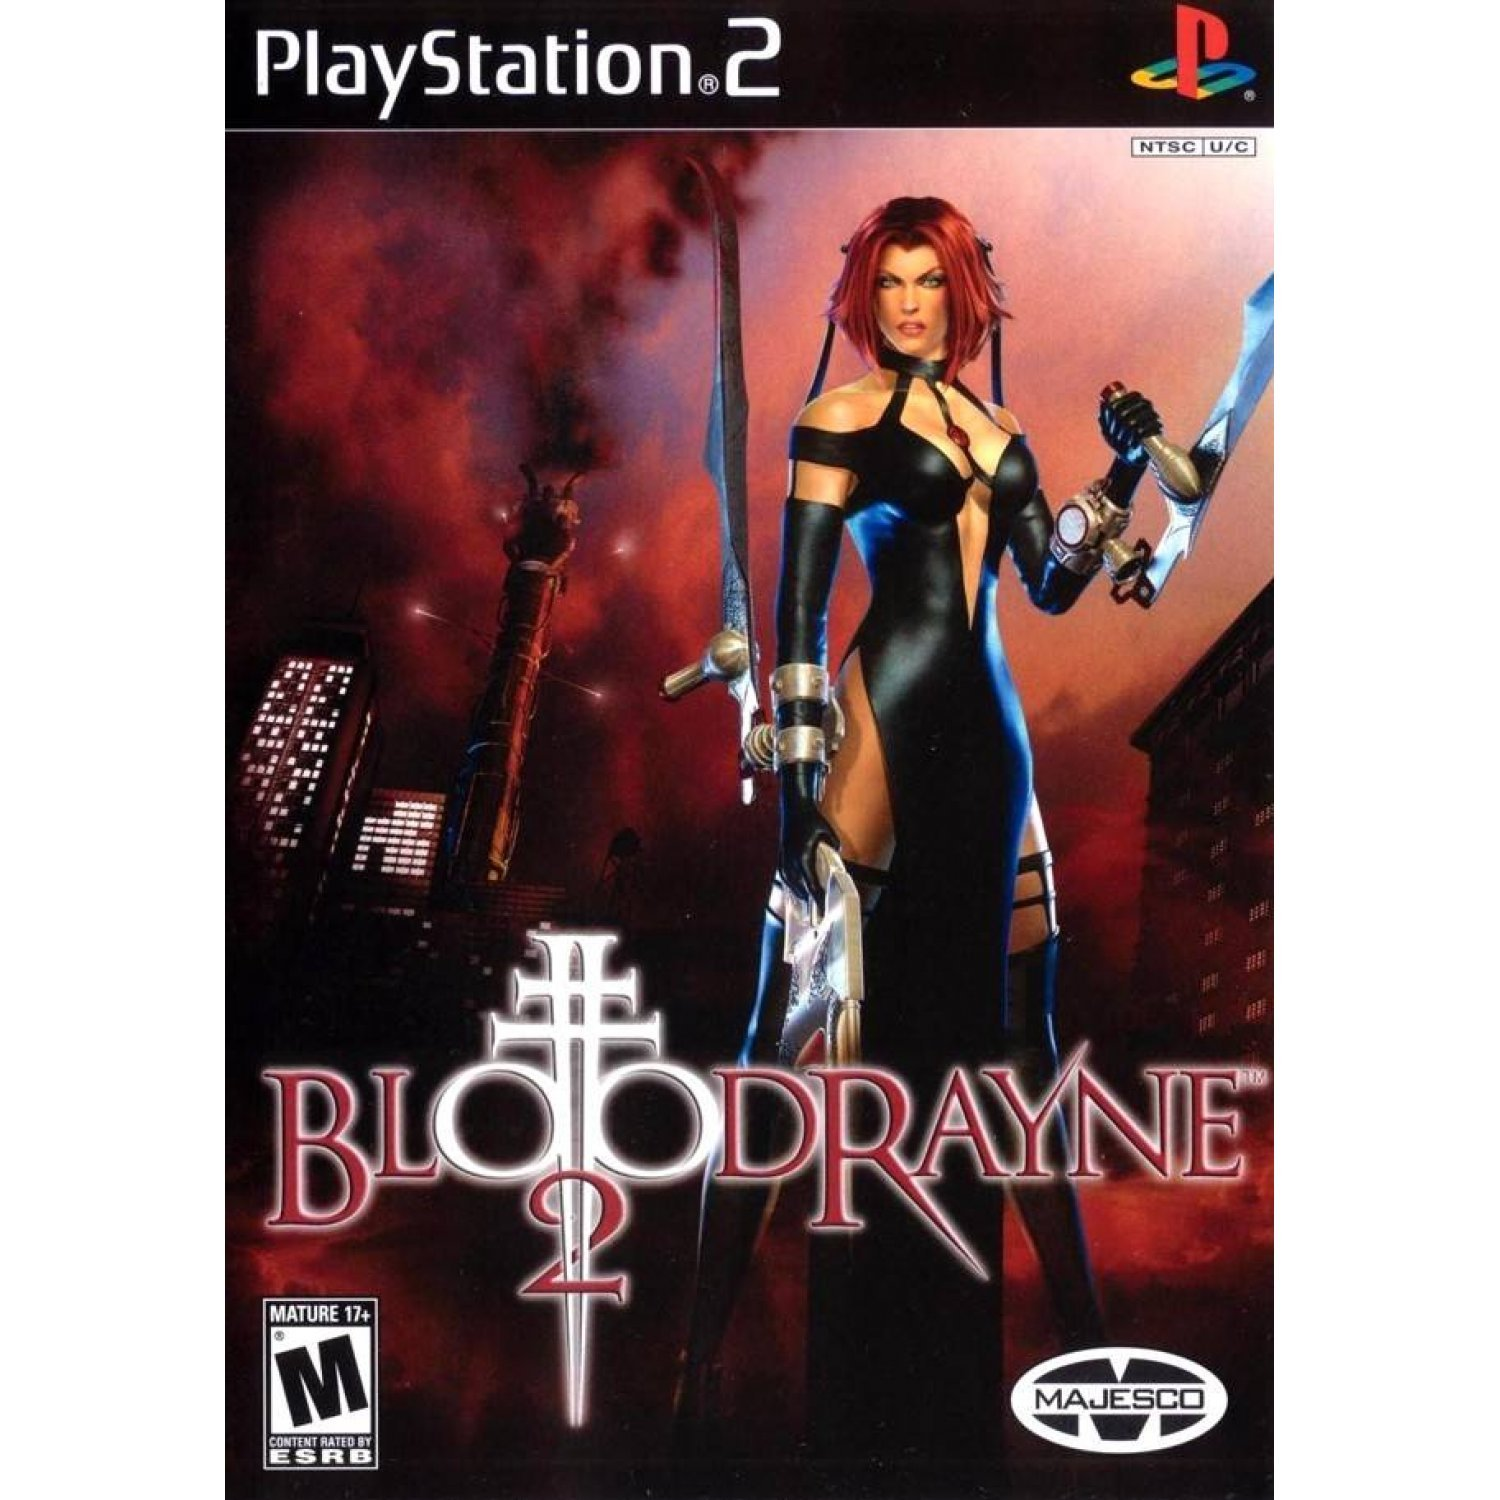 Bloodrayne 2 xbox nude patch exploited scenes